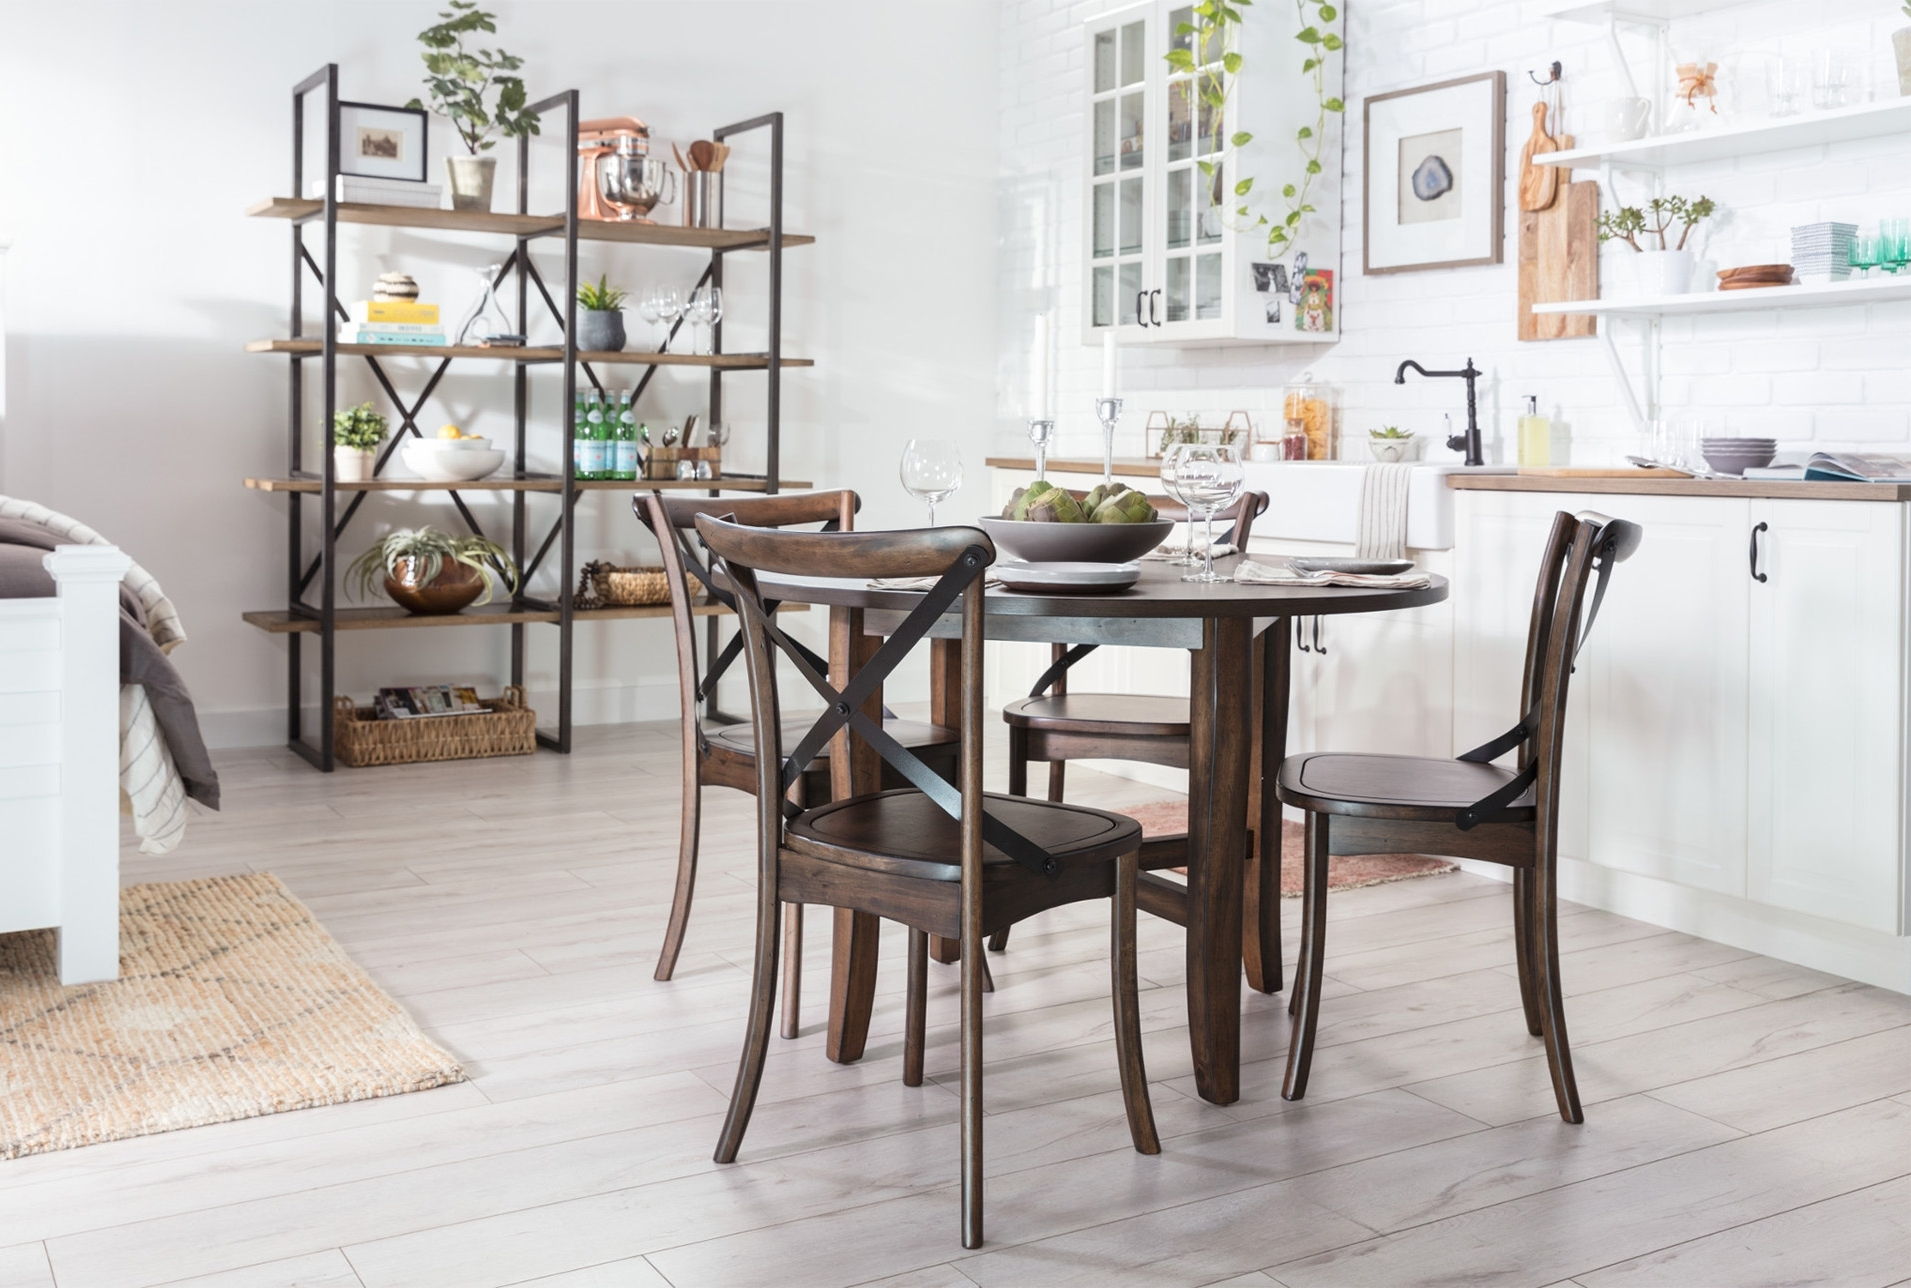 Grady Round Dining Tables Throughout Favorite Grady 5 Piece Round Dining Set (View 13 of 25)